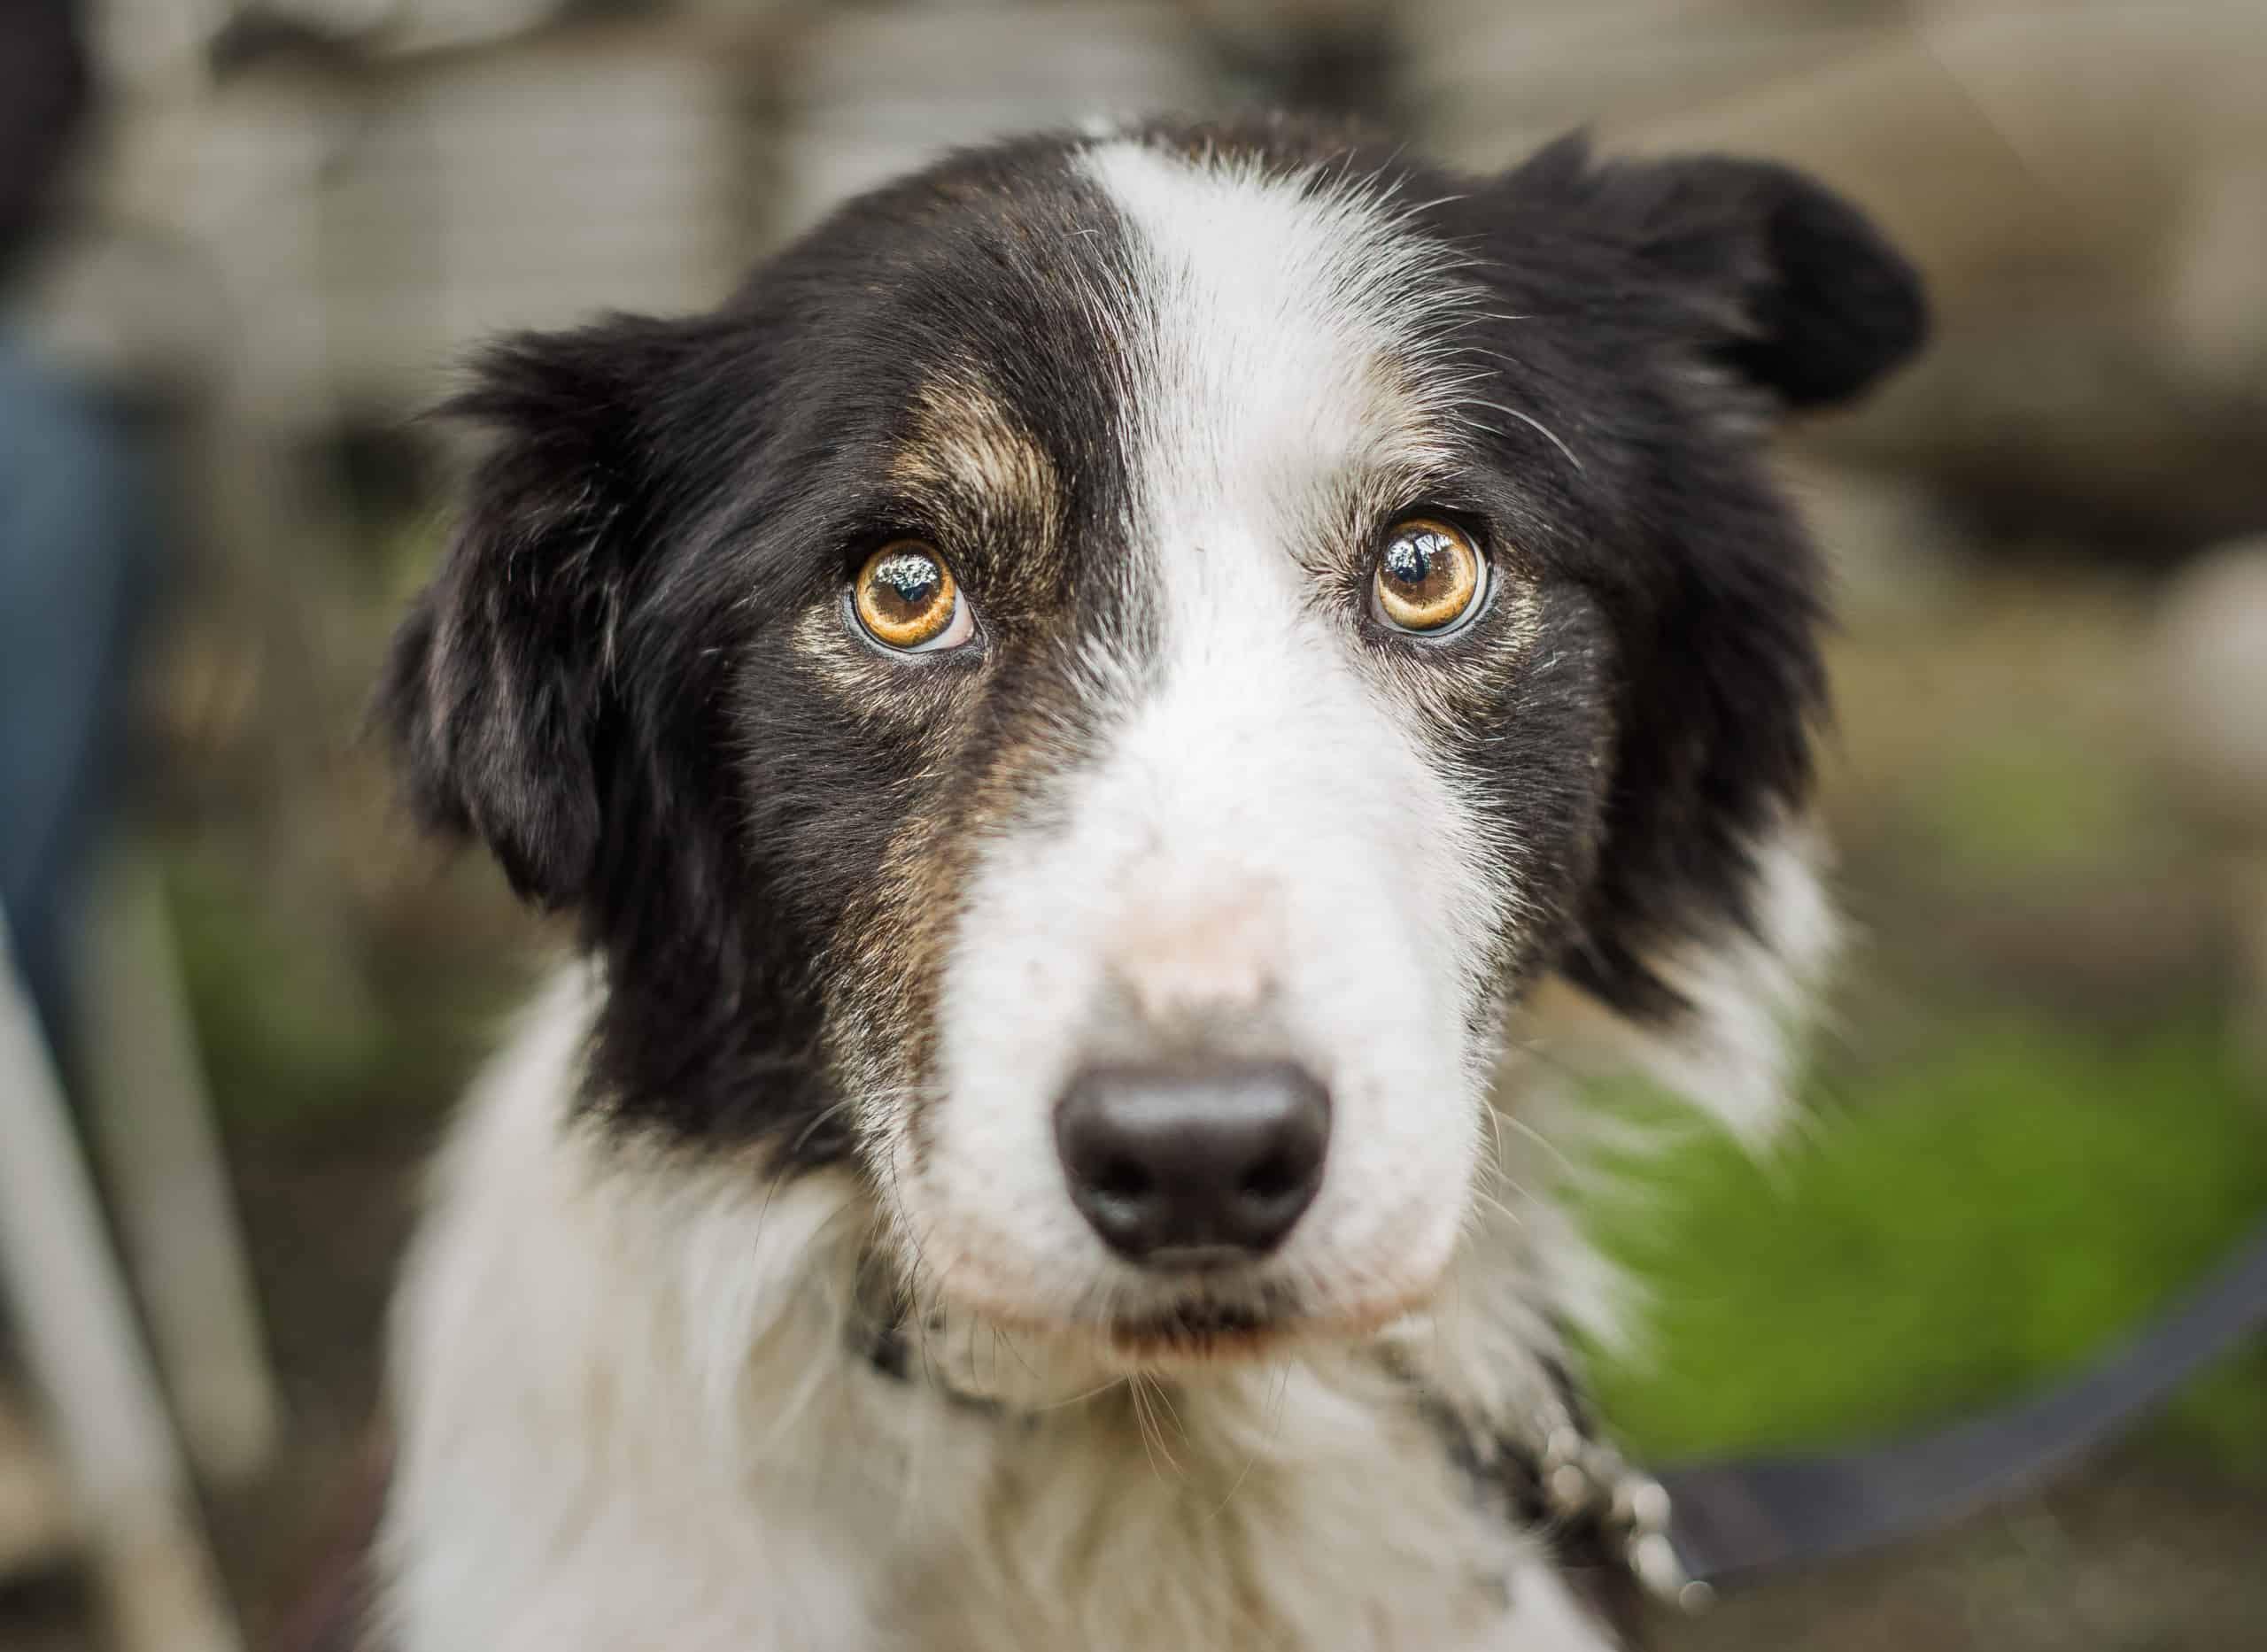 Nervous border collie. To help manage canine anxiety identify triggers, create a routine, use exercise, and consider trying CBD supplements.